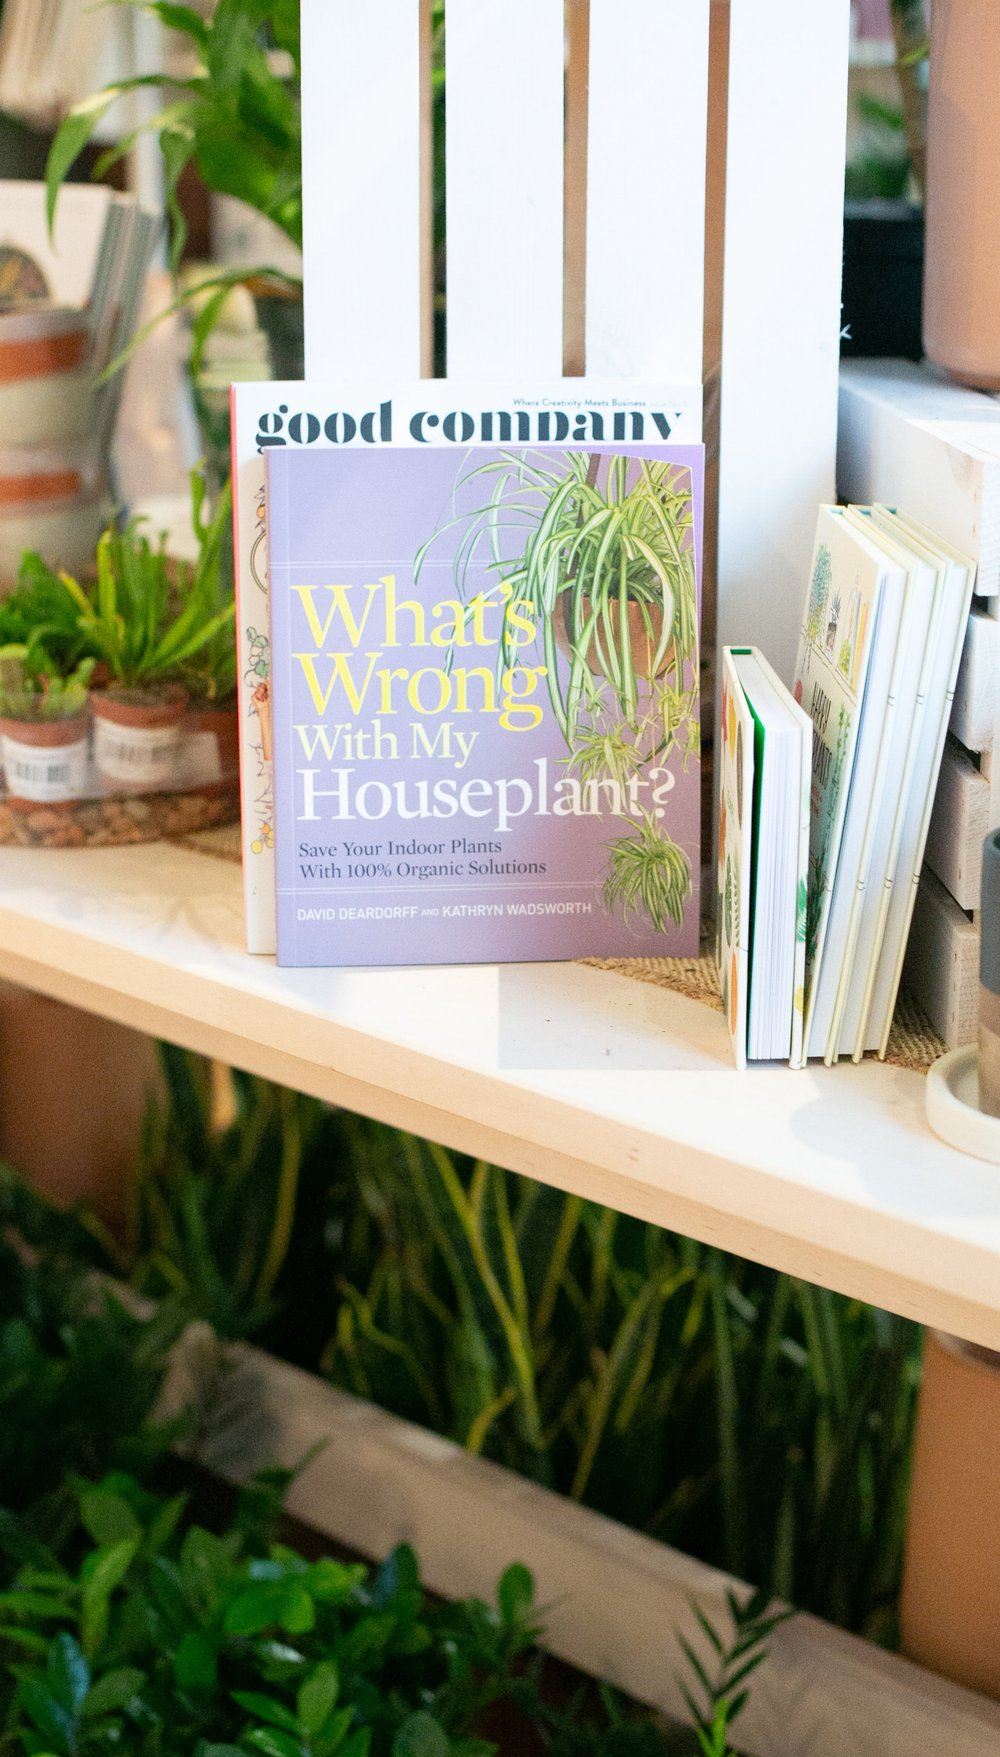 What's Wrong With My Houseplant?  is a favorite guide among our team for learning about plant problems and how to fix them.